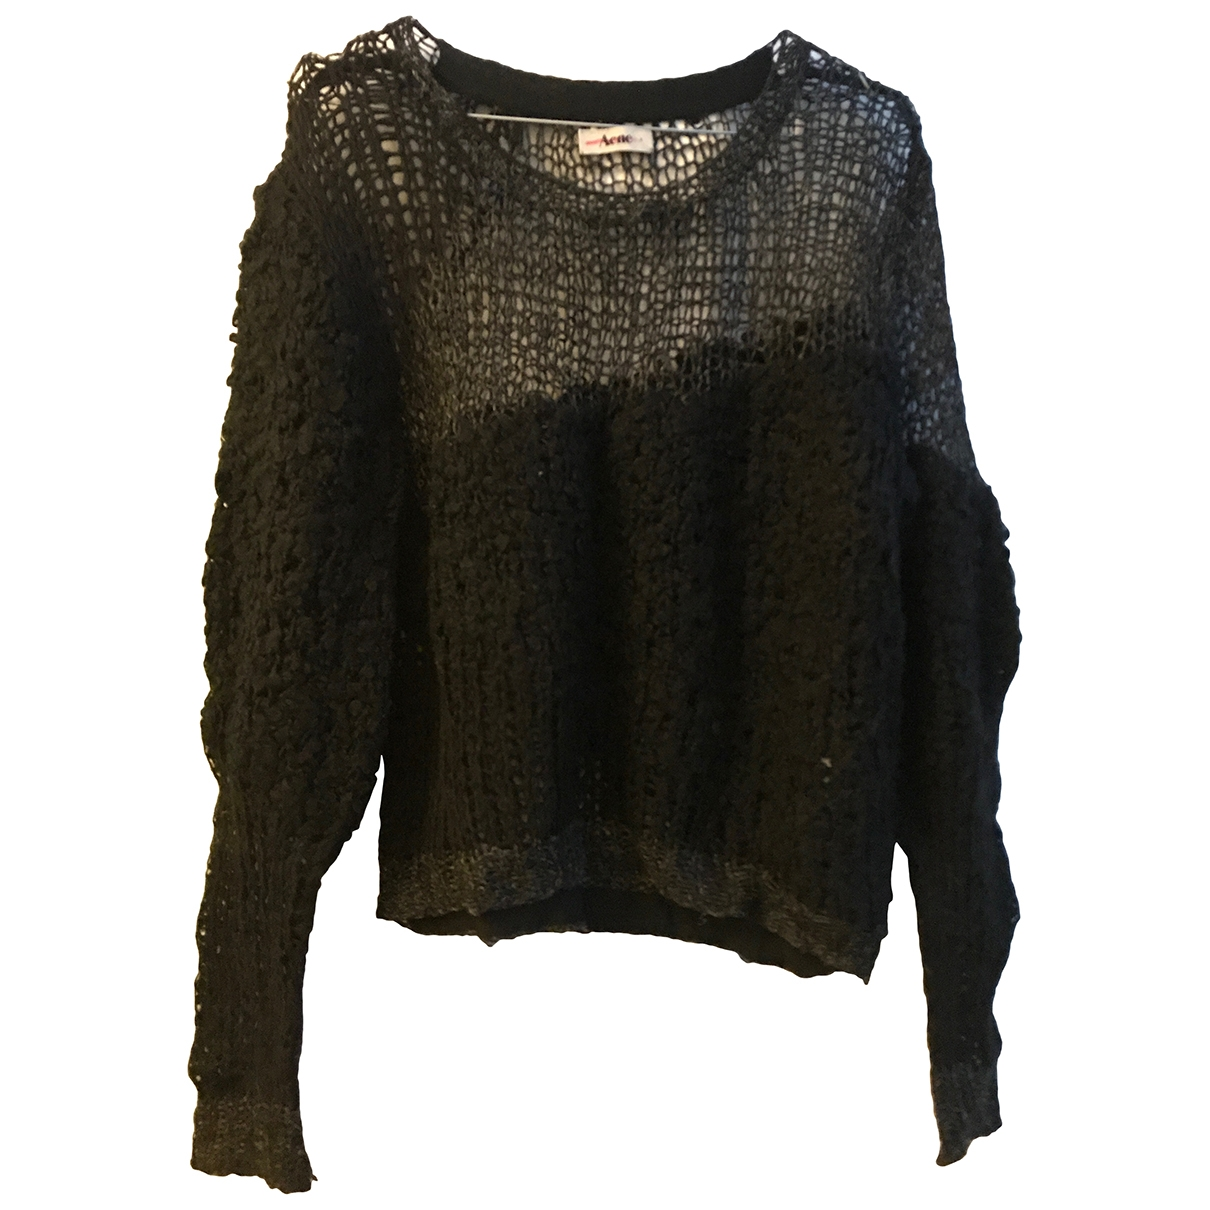 Acne Studios \N Black Wool Knitwear for Women S International